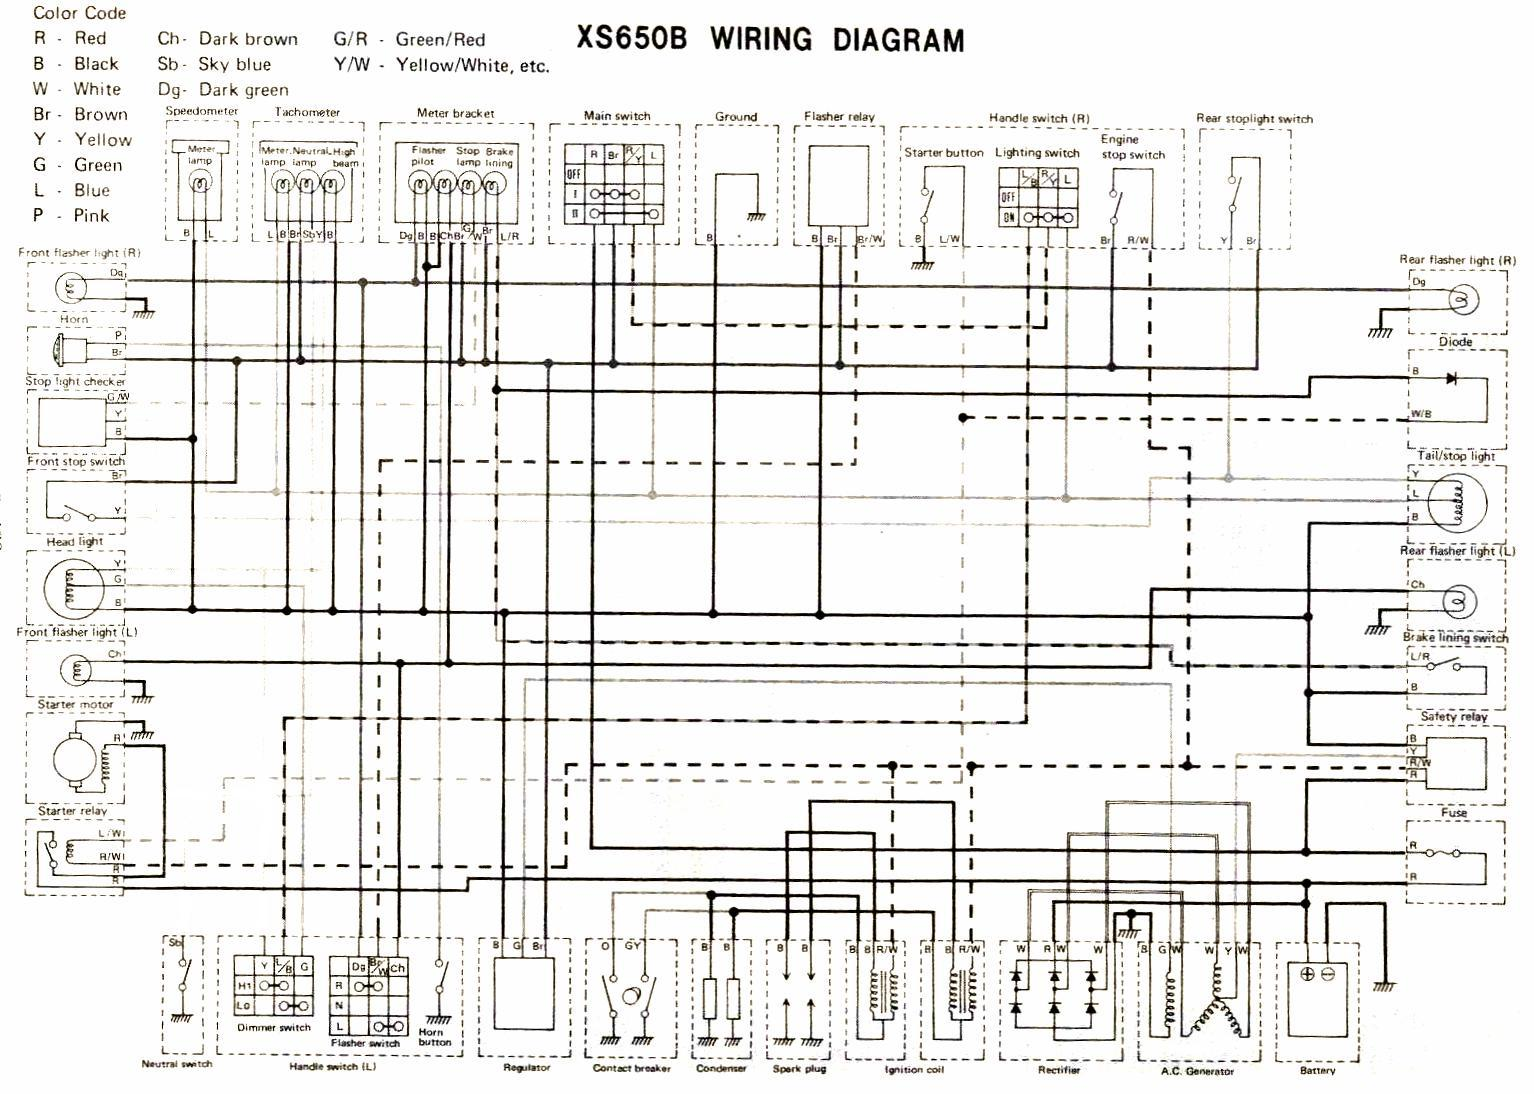 75XS650B wiring diagrams pdf wiring diagram 2005 yamaha r6 at n-0.co